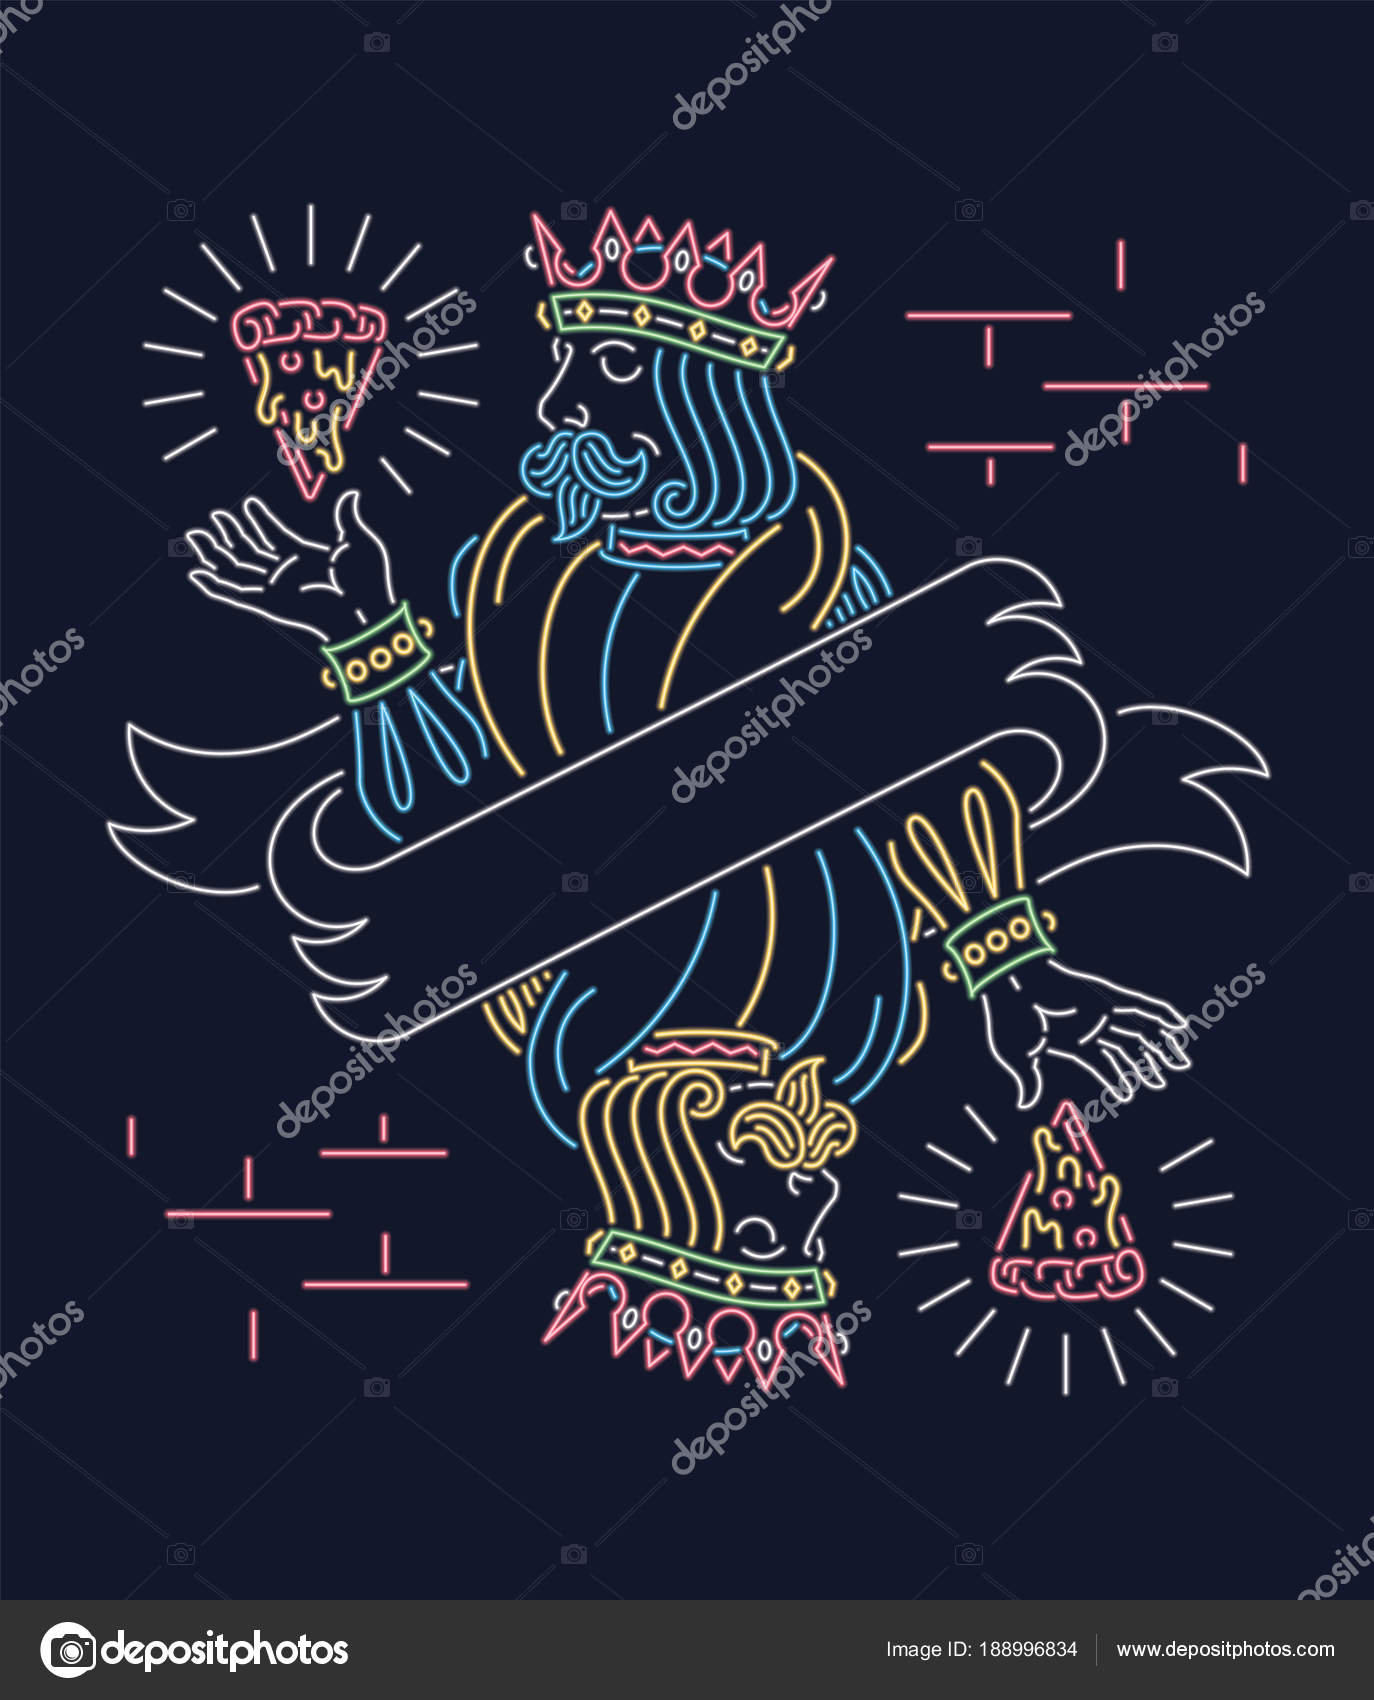 The King Of Pizza Wallpaper Neon Sign Design Stock Vector